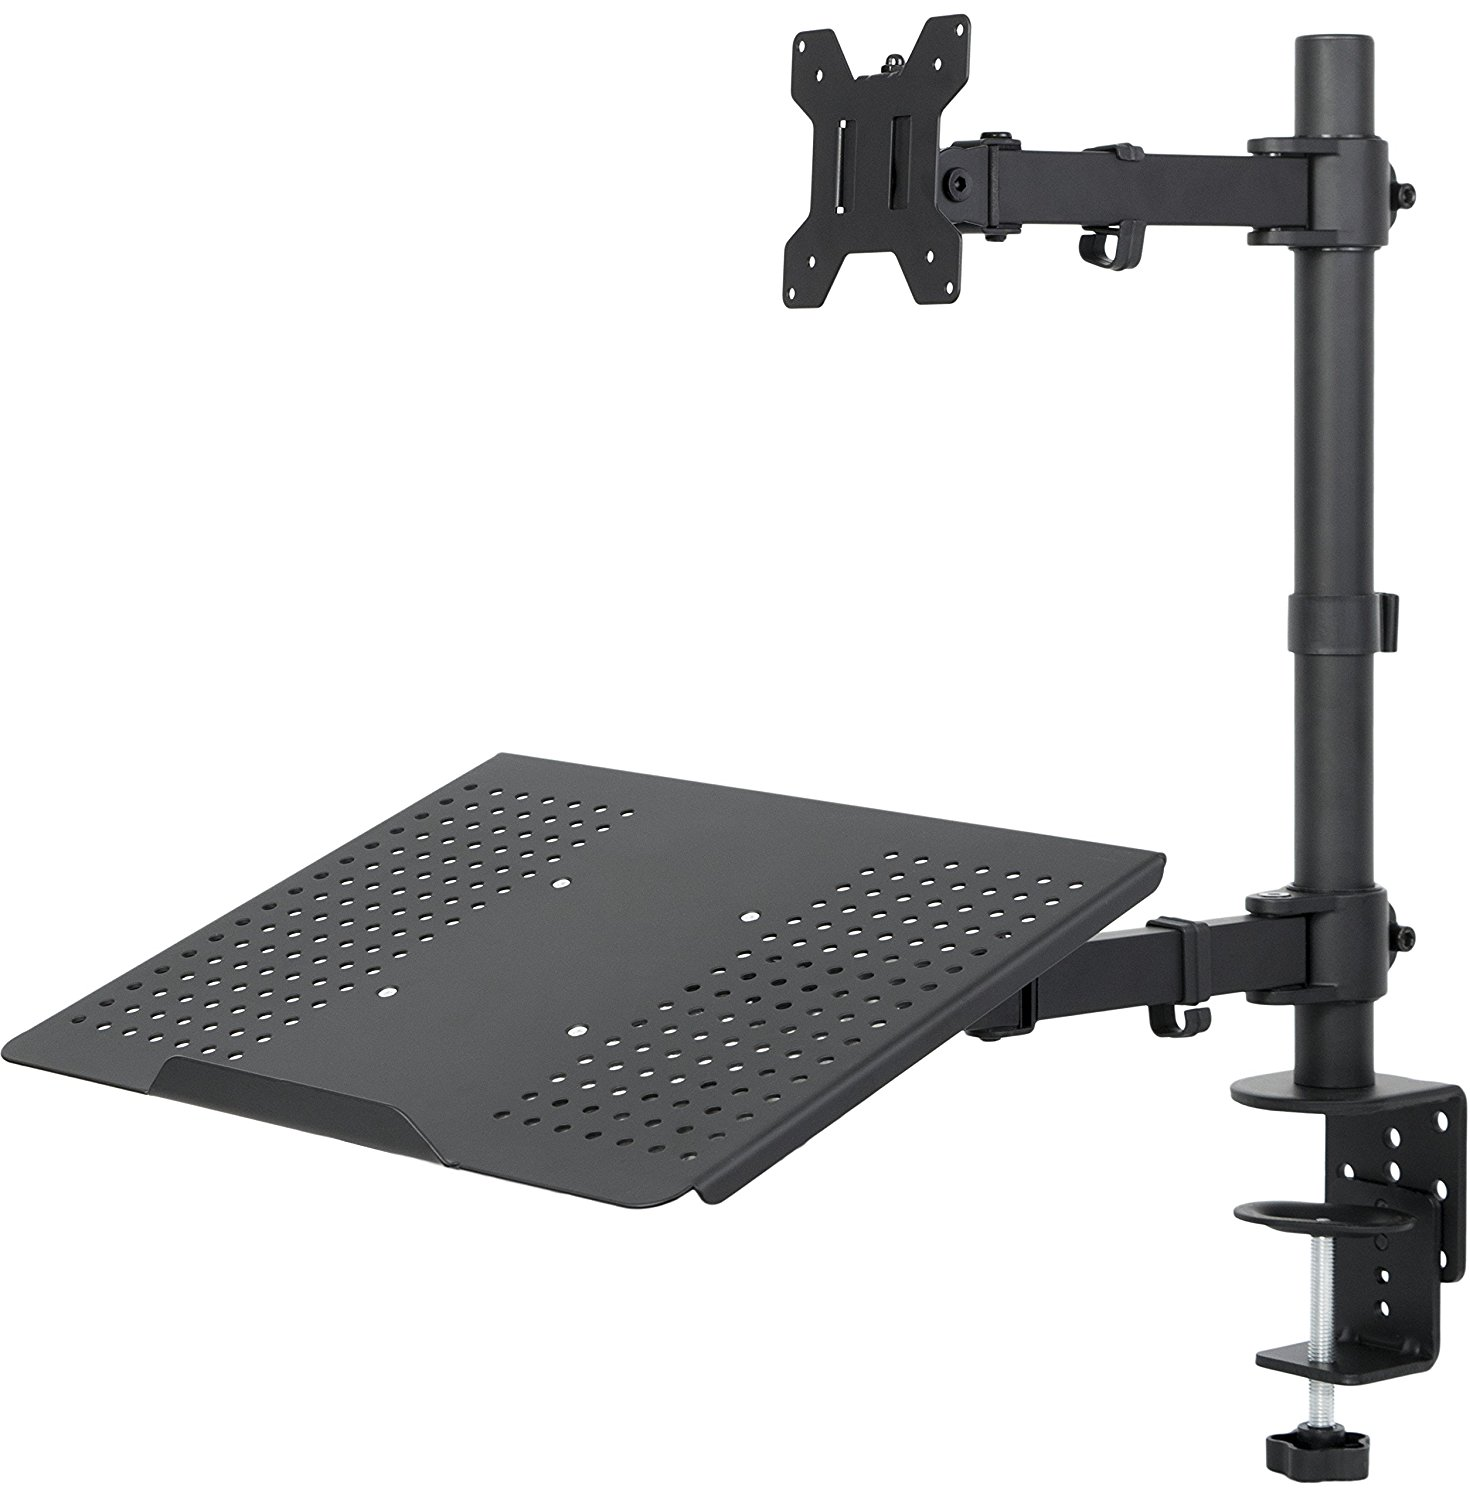 VIVO Fully Adjustable Single Computer Monitor and Laptop Desk Mount Combo Black Stand with Grommet Option | Fits 13